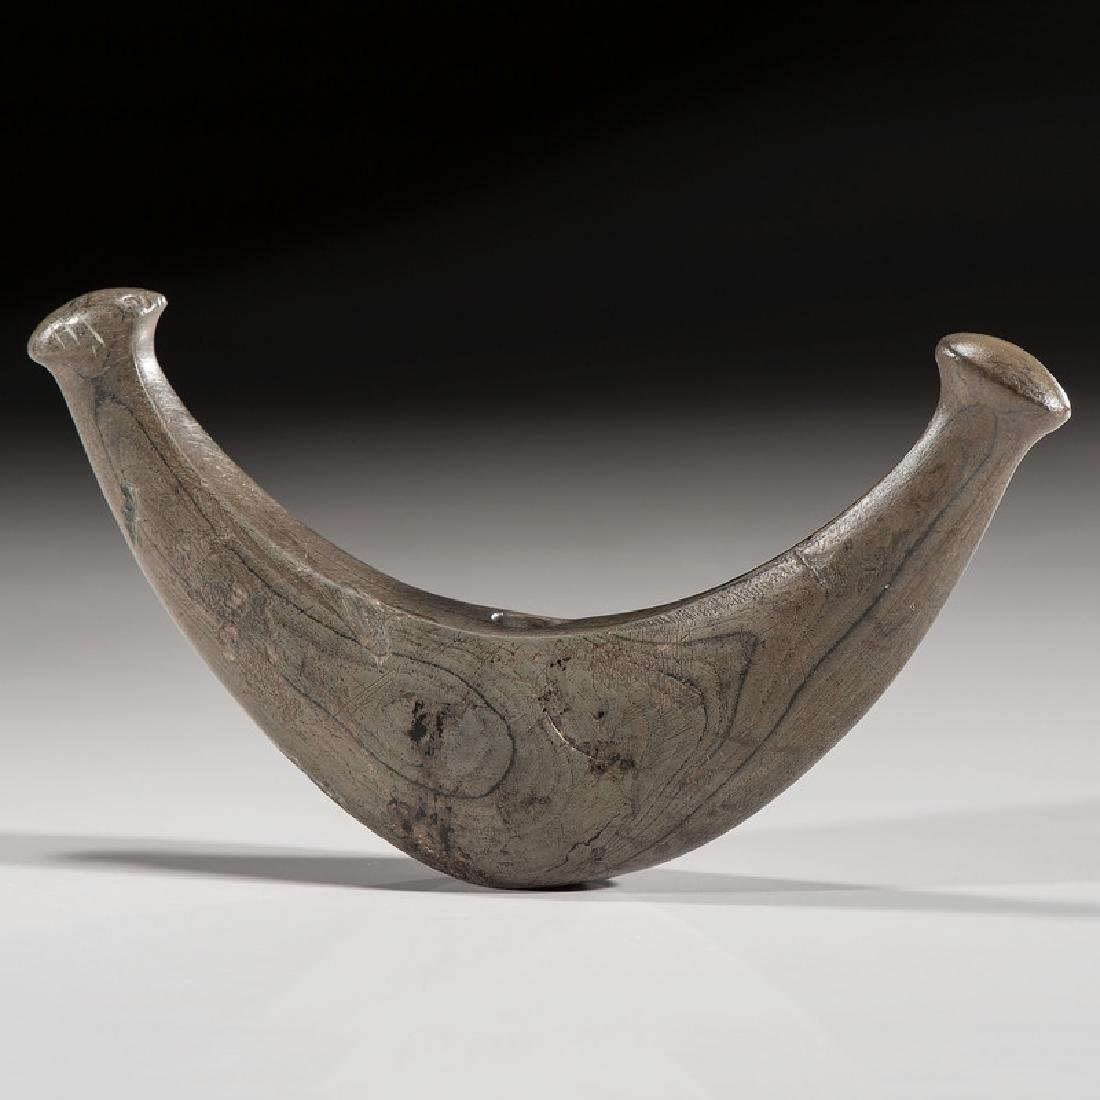 A Knobbed Crescent Bannerstone, From the Collection of